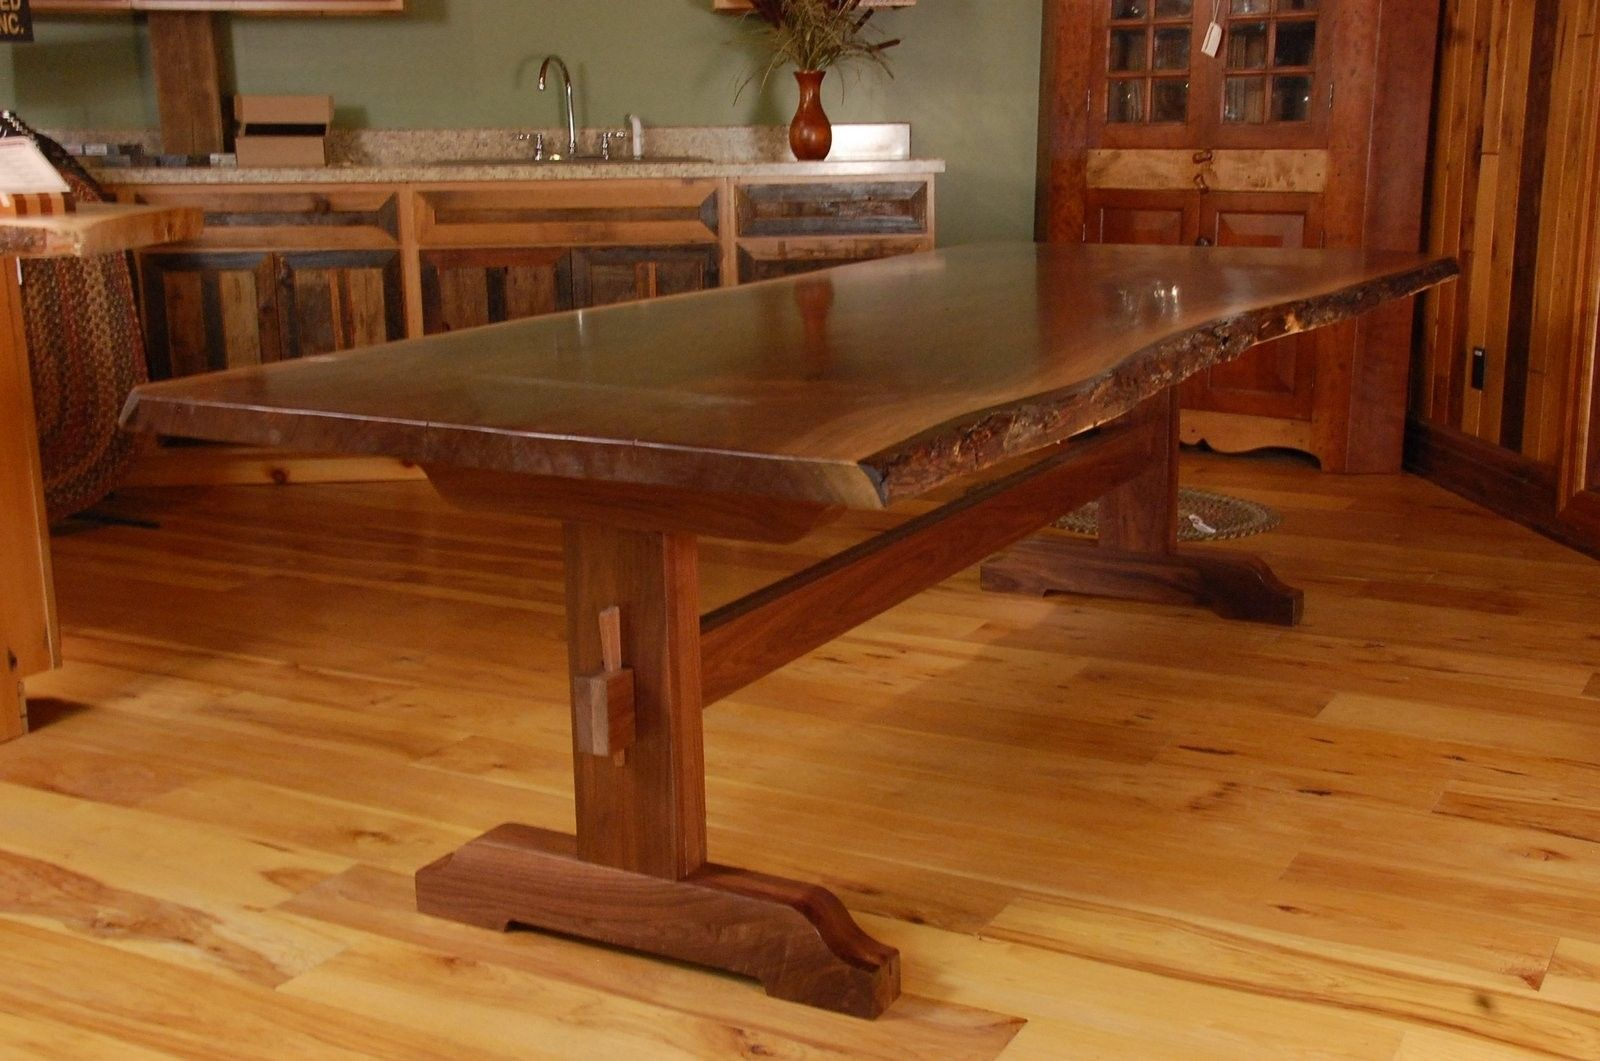 Hand Made Live Edge Walnut Slab Trestle Dining Table By Corey Morgan Wood Works